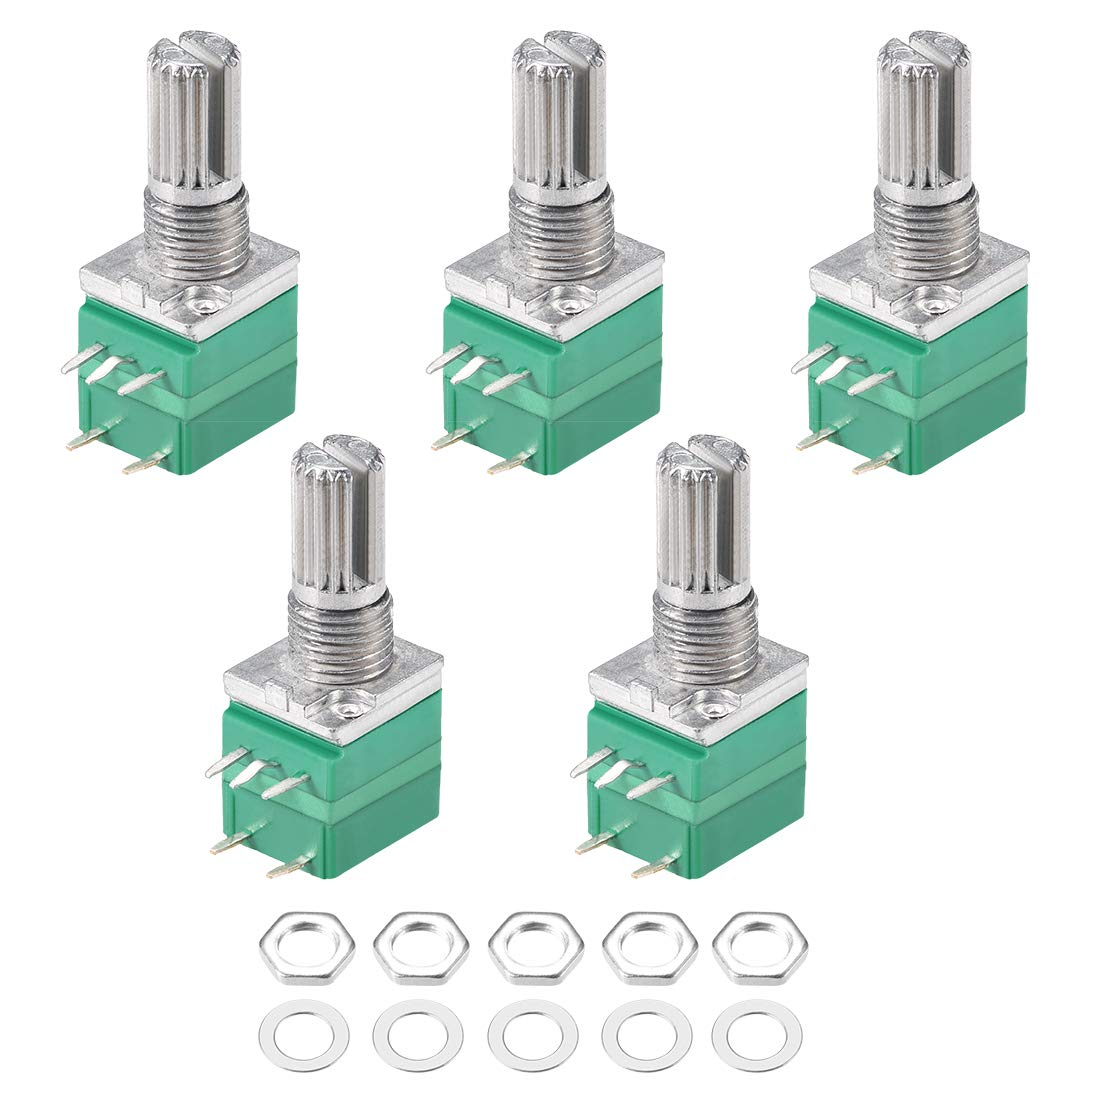 5pcs/lot RV097NS Potentiometer 5K 10K 20K 50K 100K 500K With Switch Audio 5pin Shaft 15mm Amplifier Sealing Potentiometer Kit